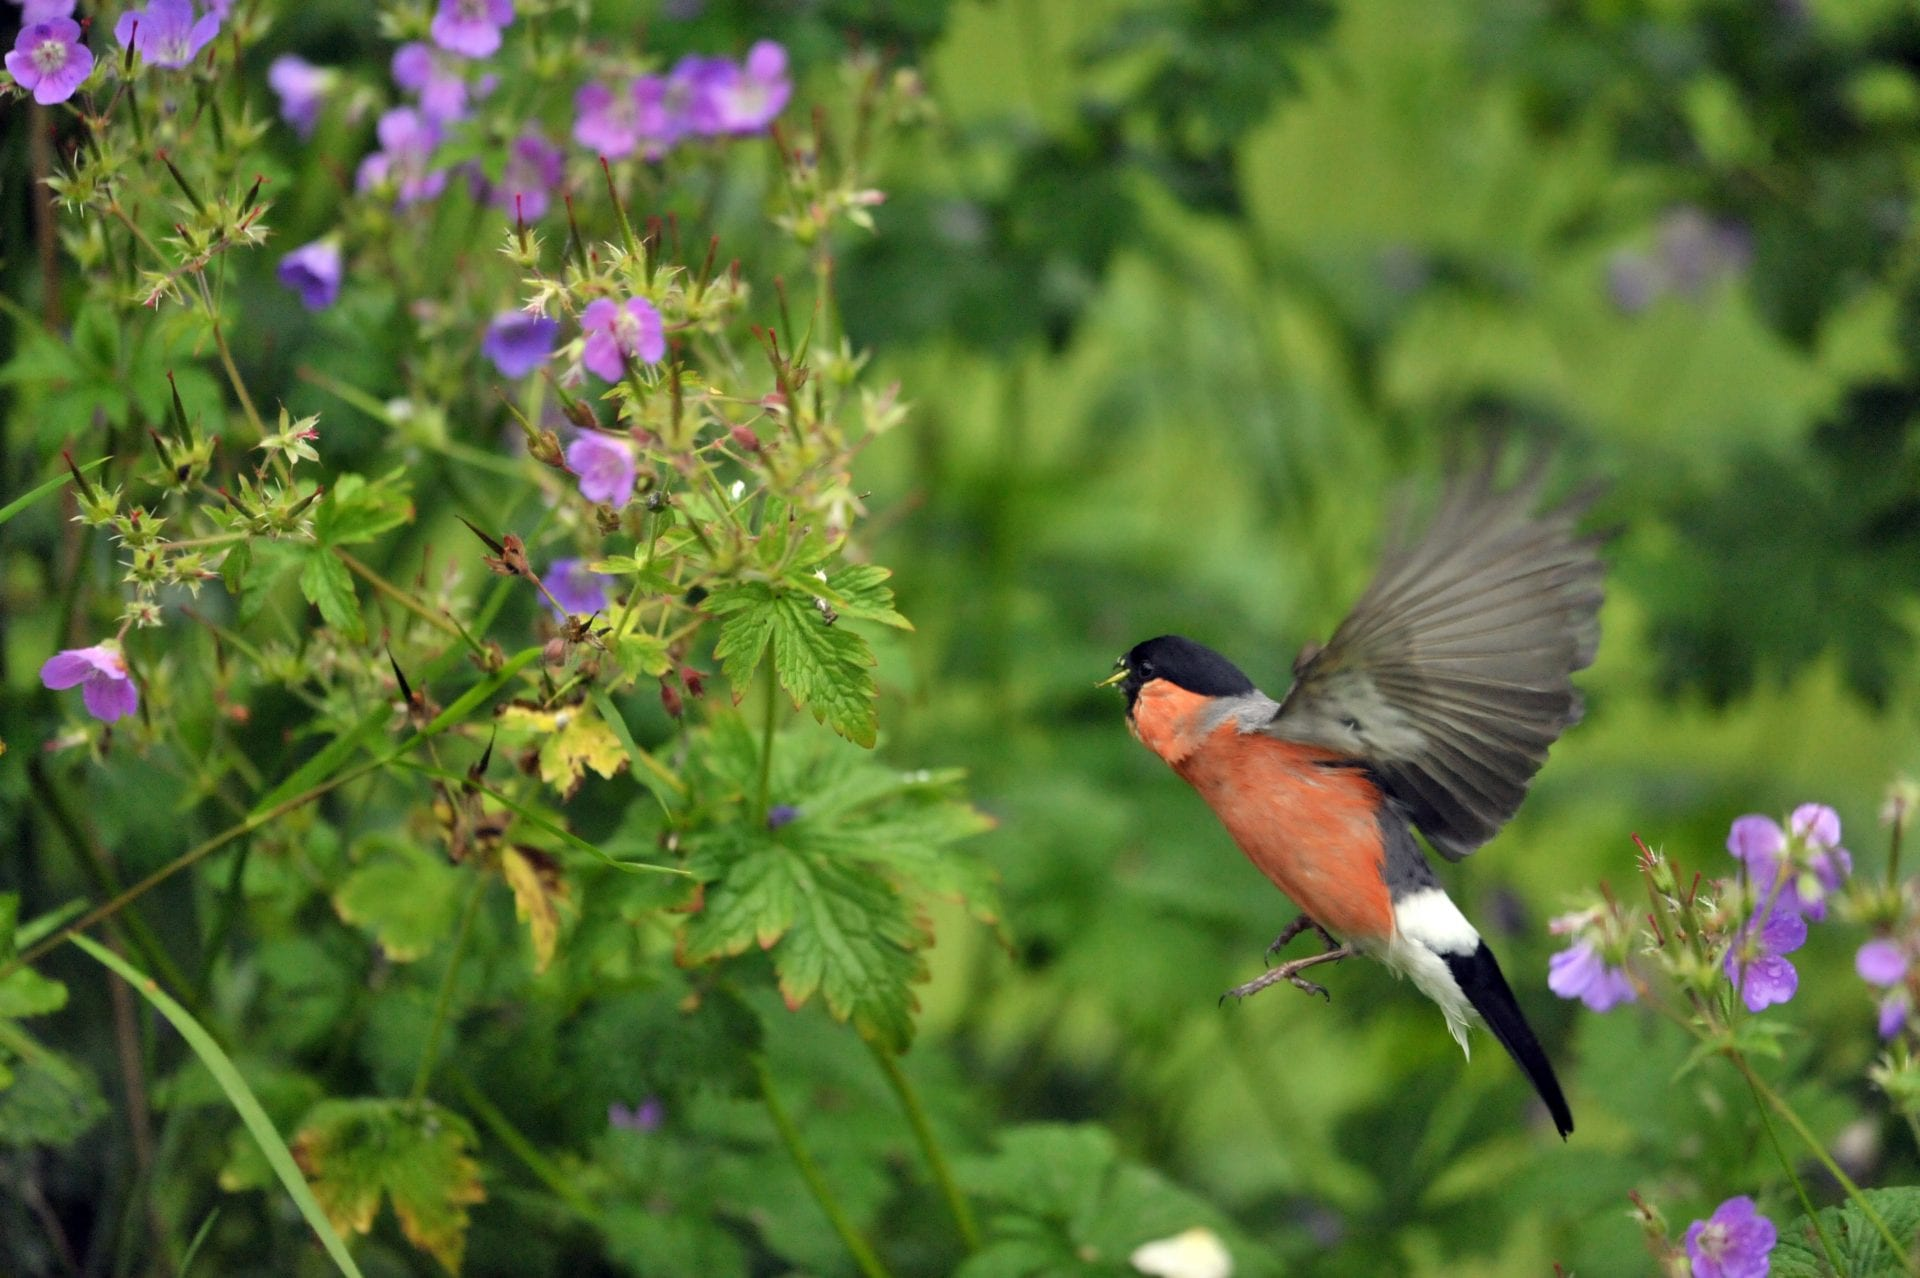 male_bullfinch_flying_in_garden_with_purple_flowers